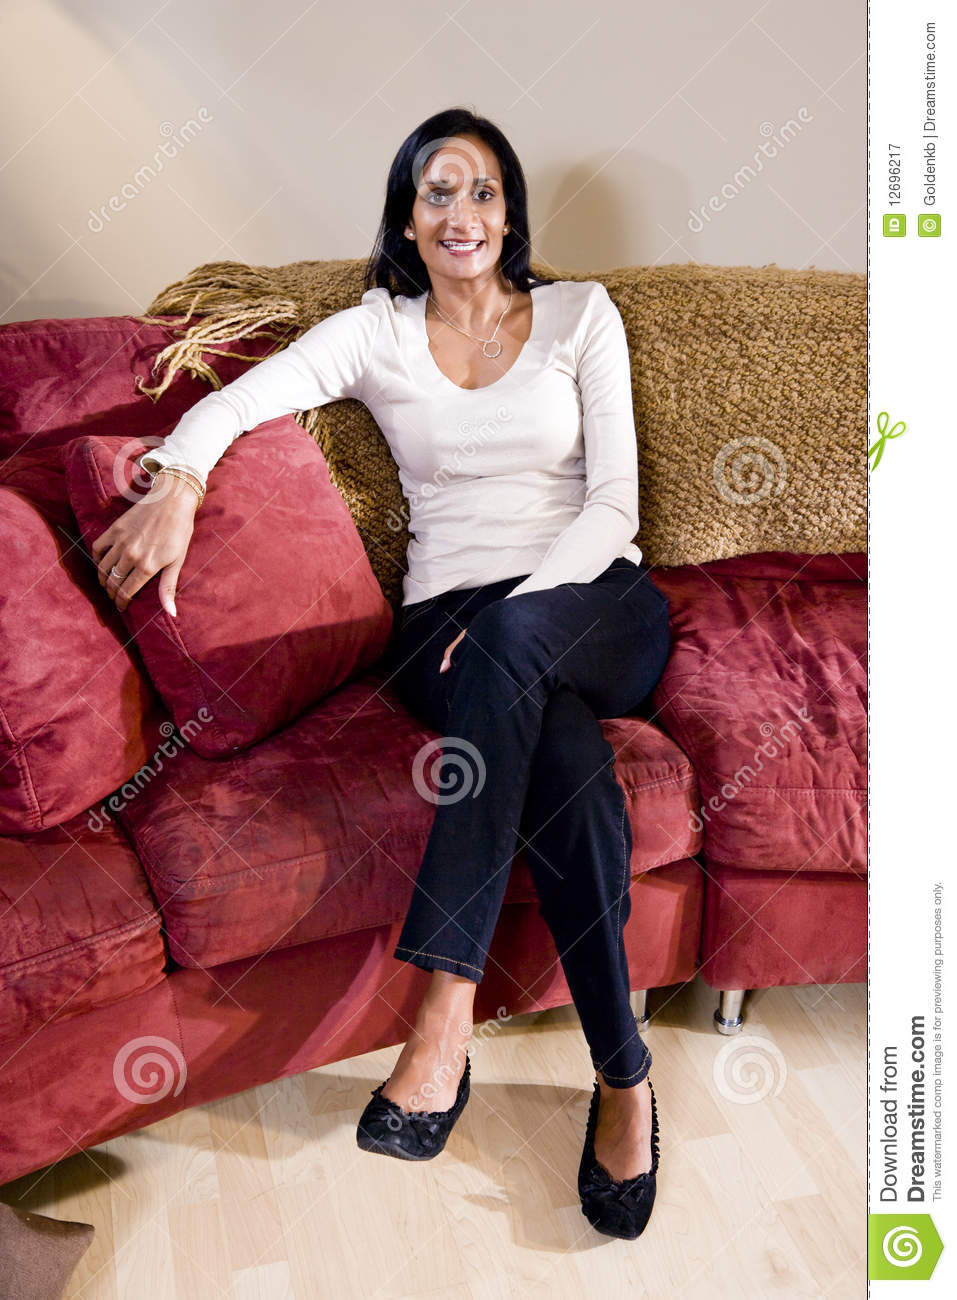 Mid Adult Indian Woman Sitting On Sofa Royalty Free Stock